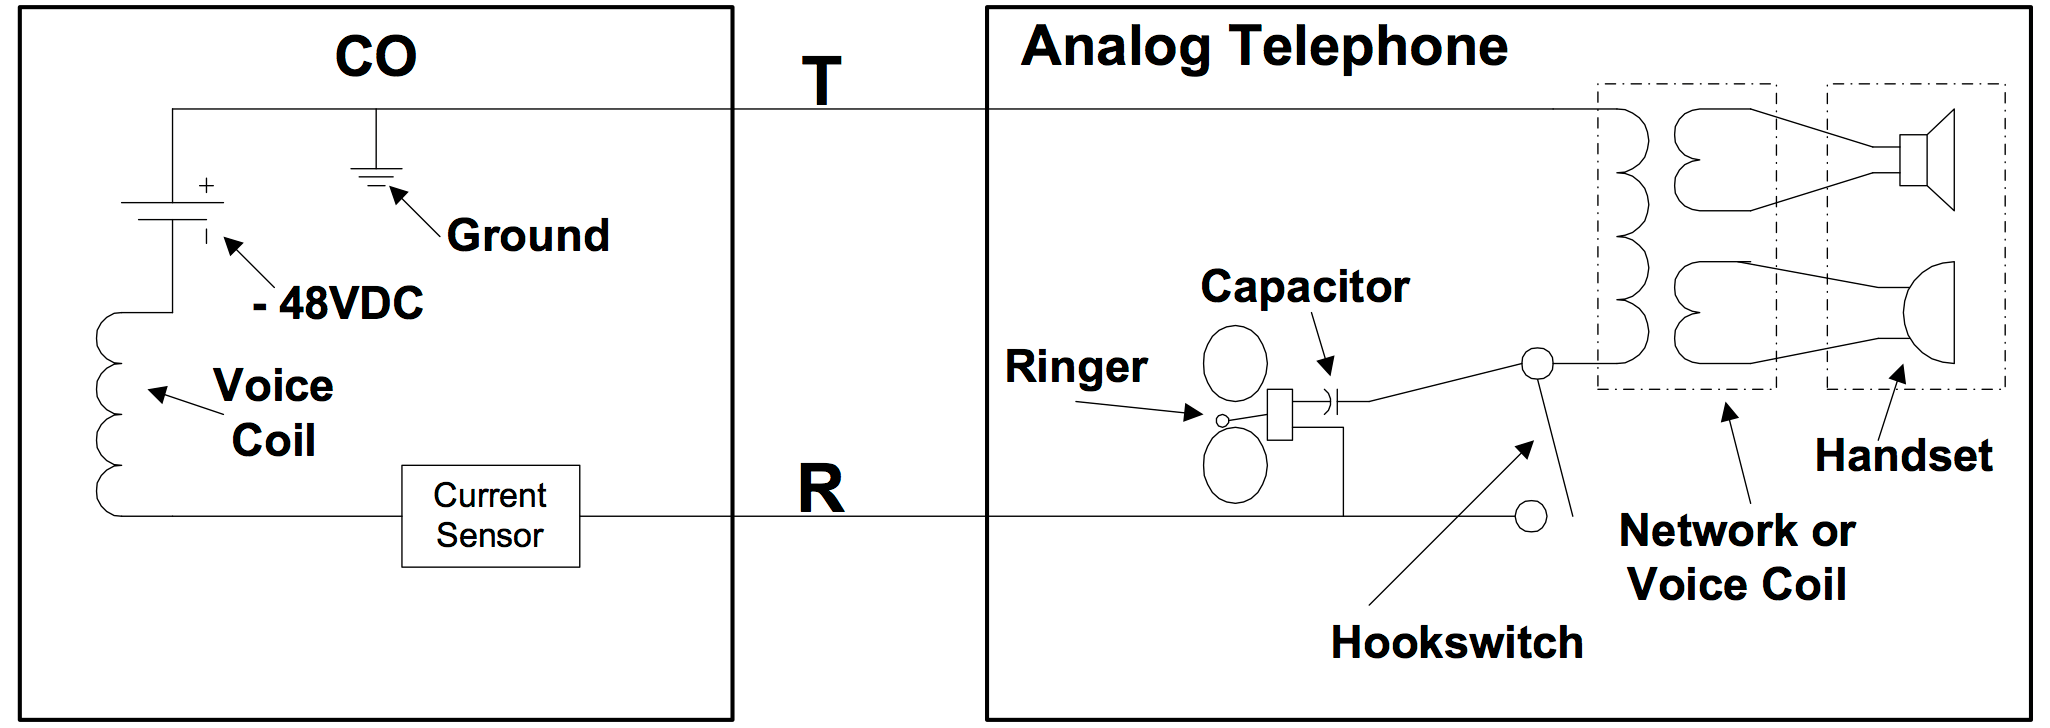 fig 5 all about analog lines Residential Telephone Wiring Diagram at fashall.co